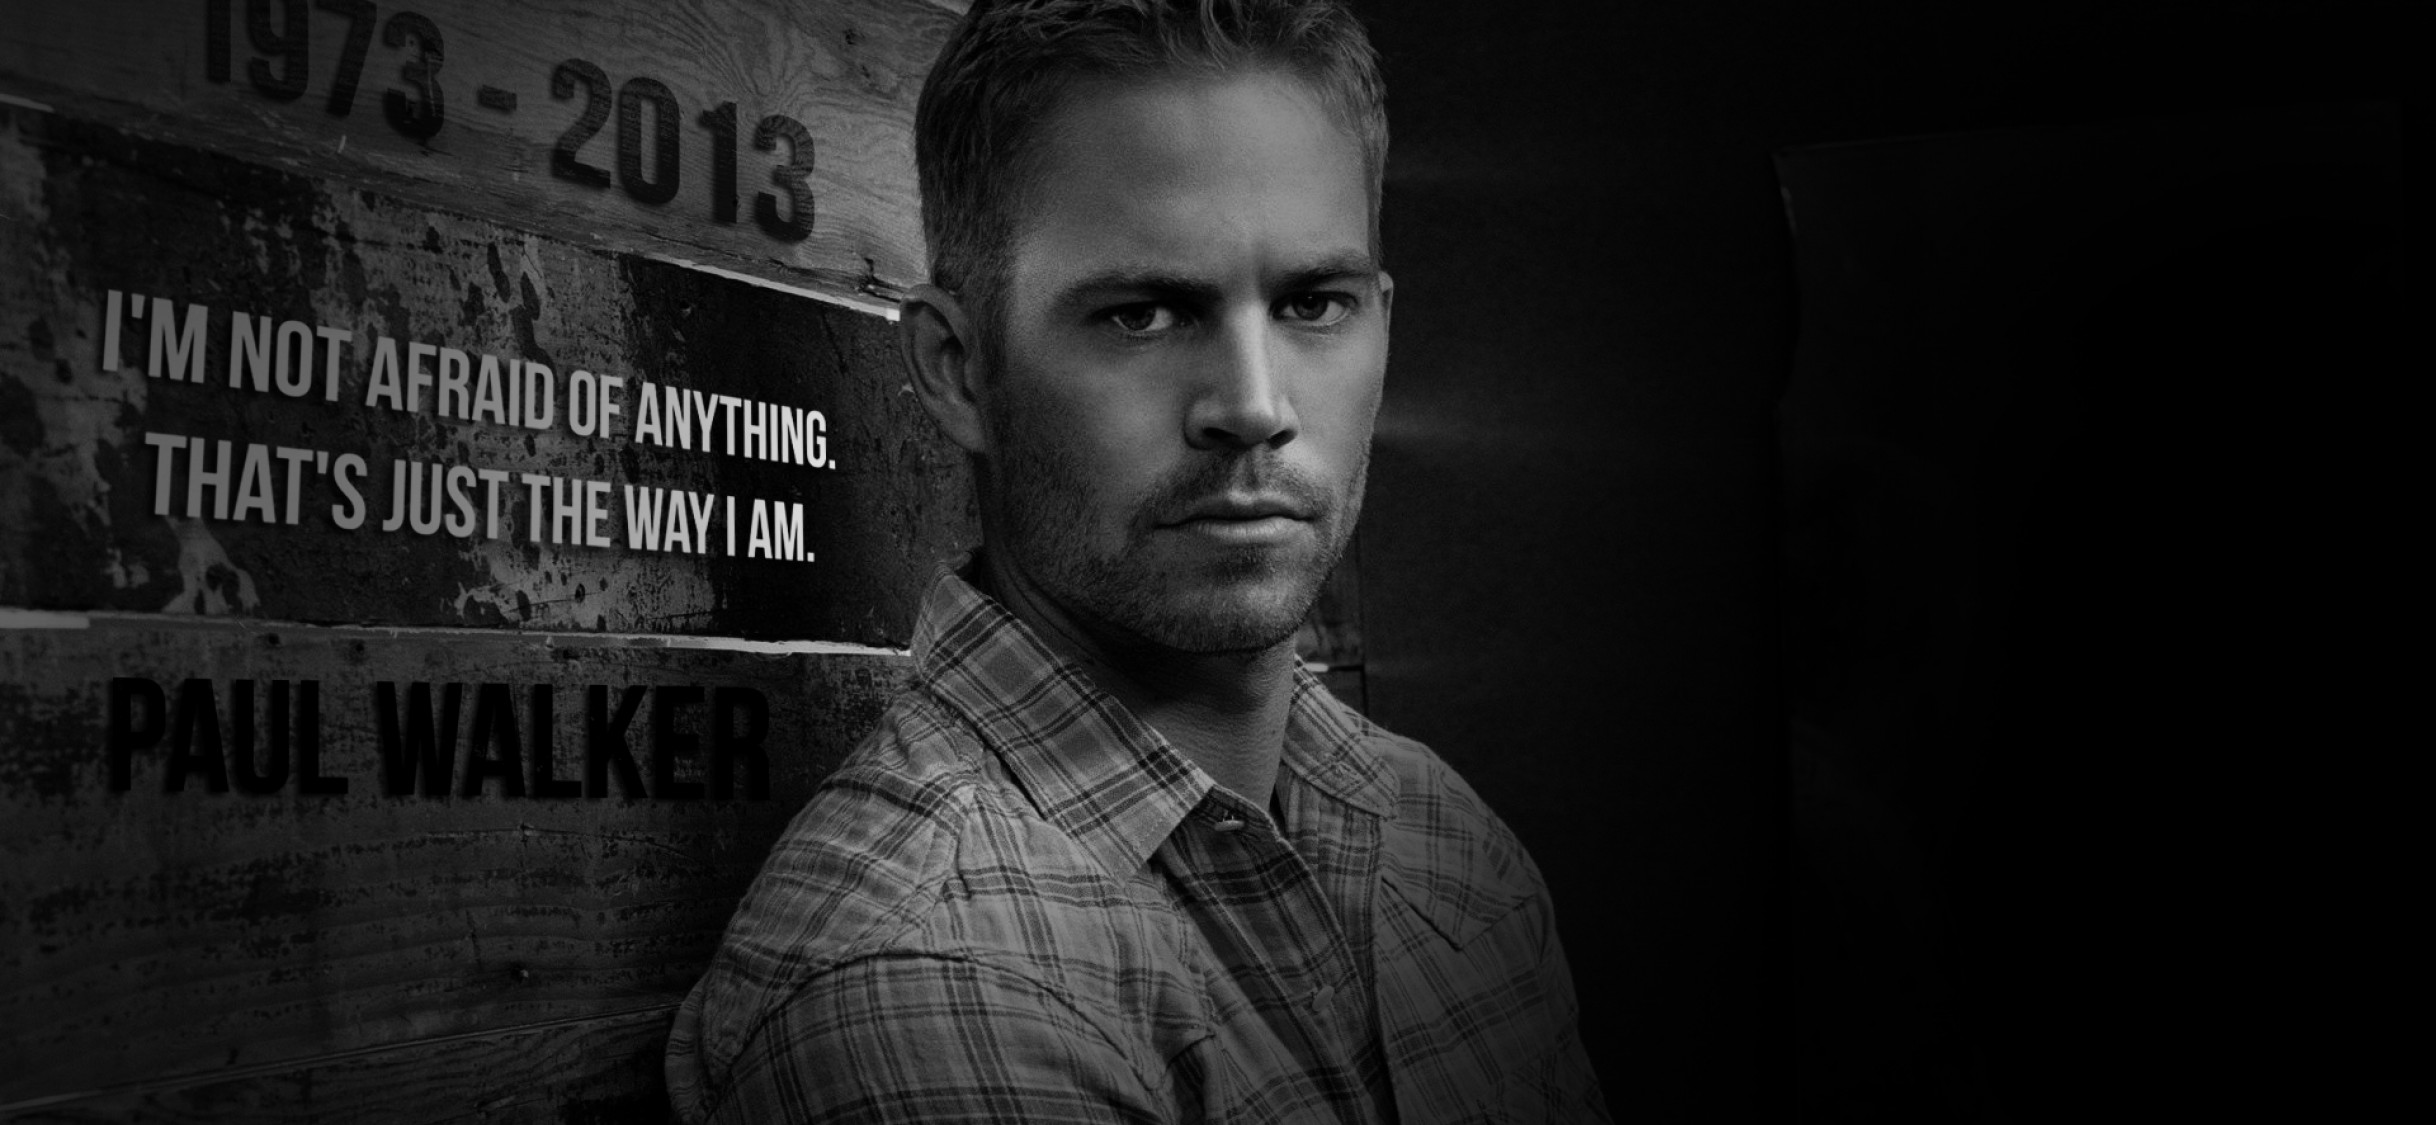 Paul Walker Hd Wallpaper For Desktop And Mobiles Iphone X Hd